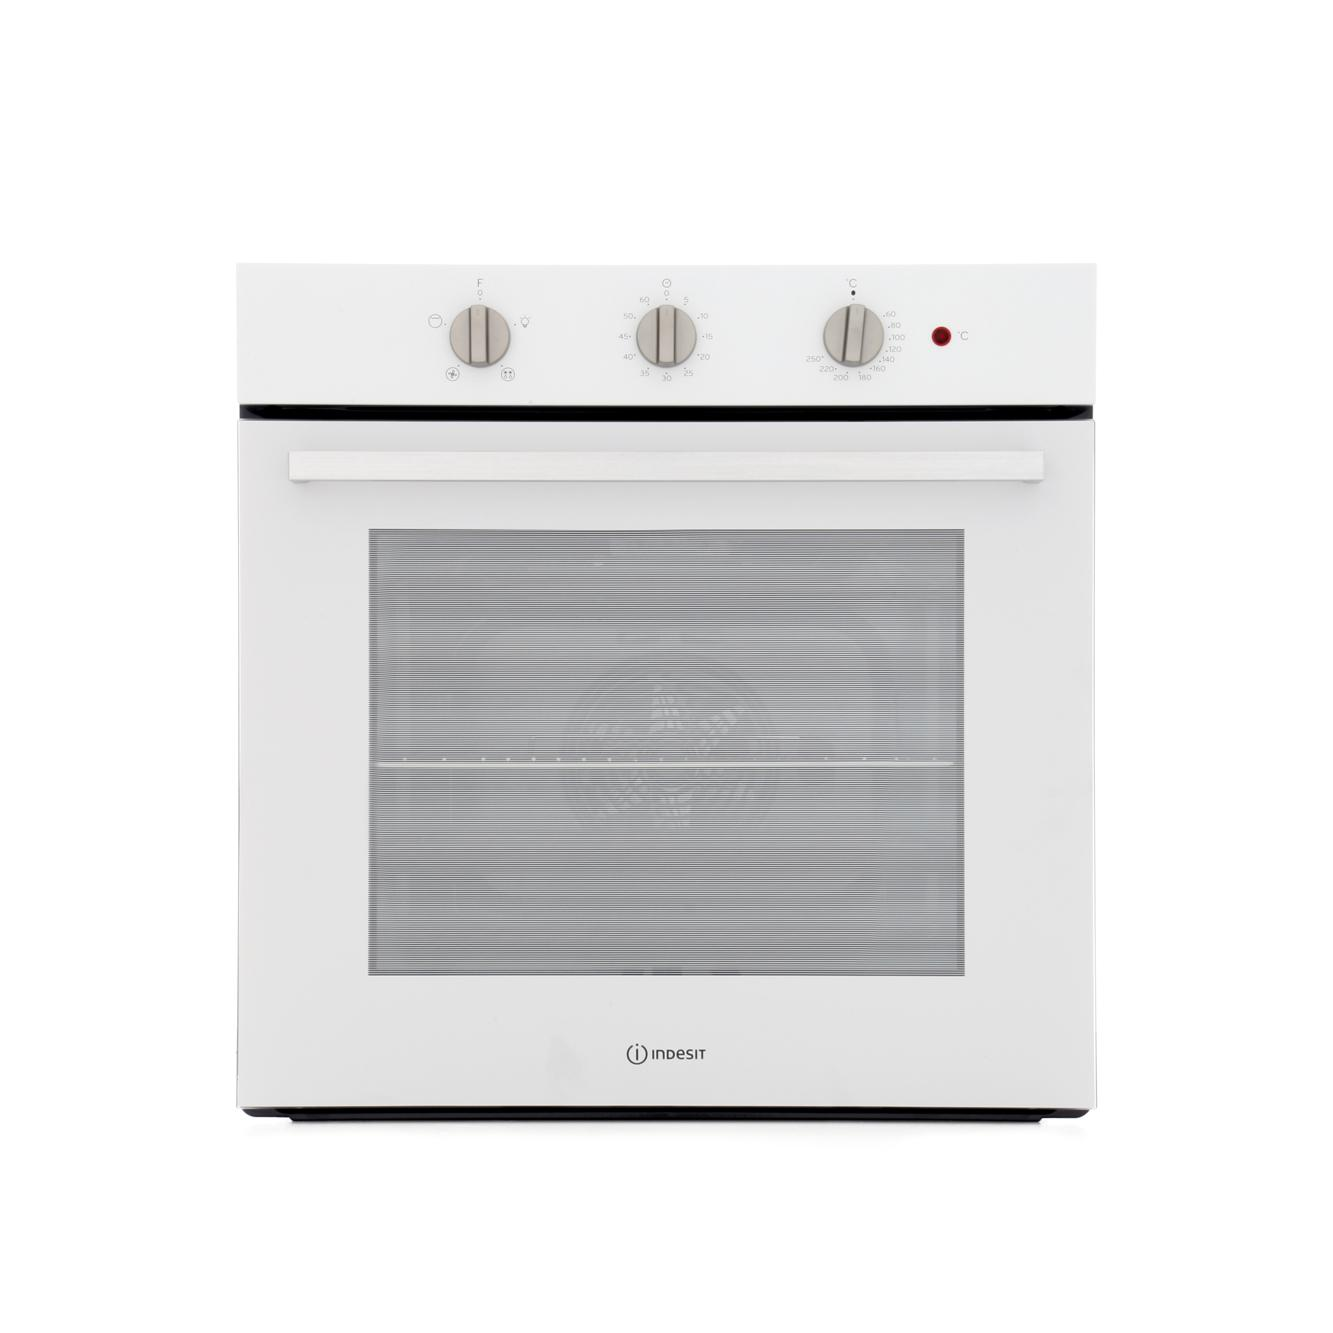 Indesit IFW6330WHUK Single Built In Electric Oven